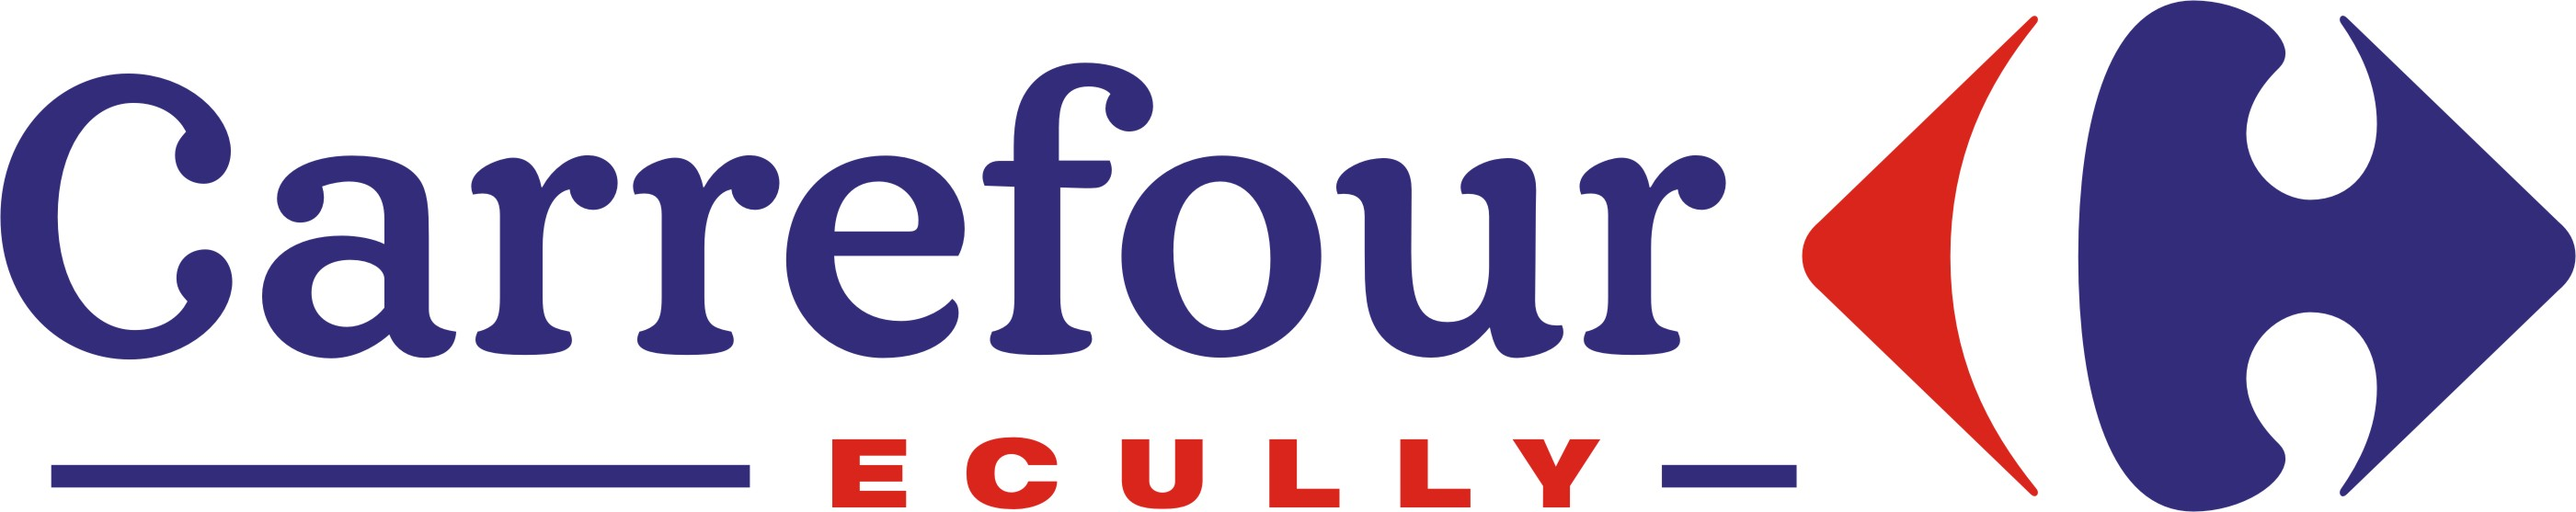 Carrefour Écully